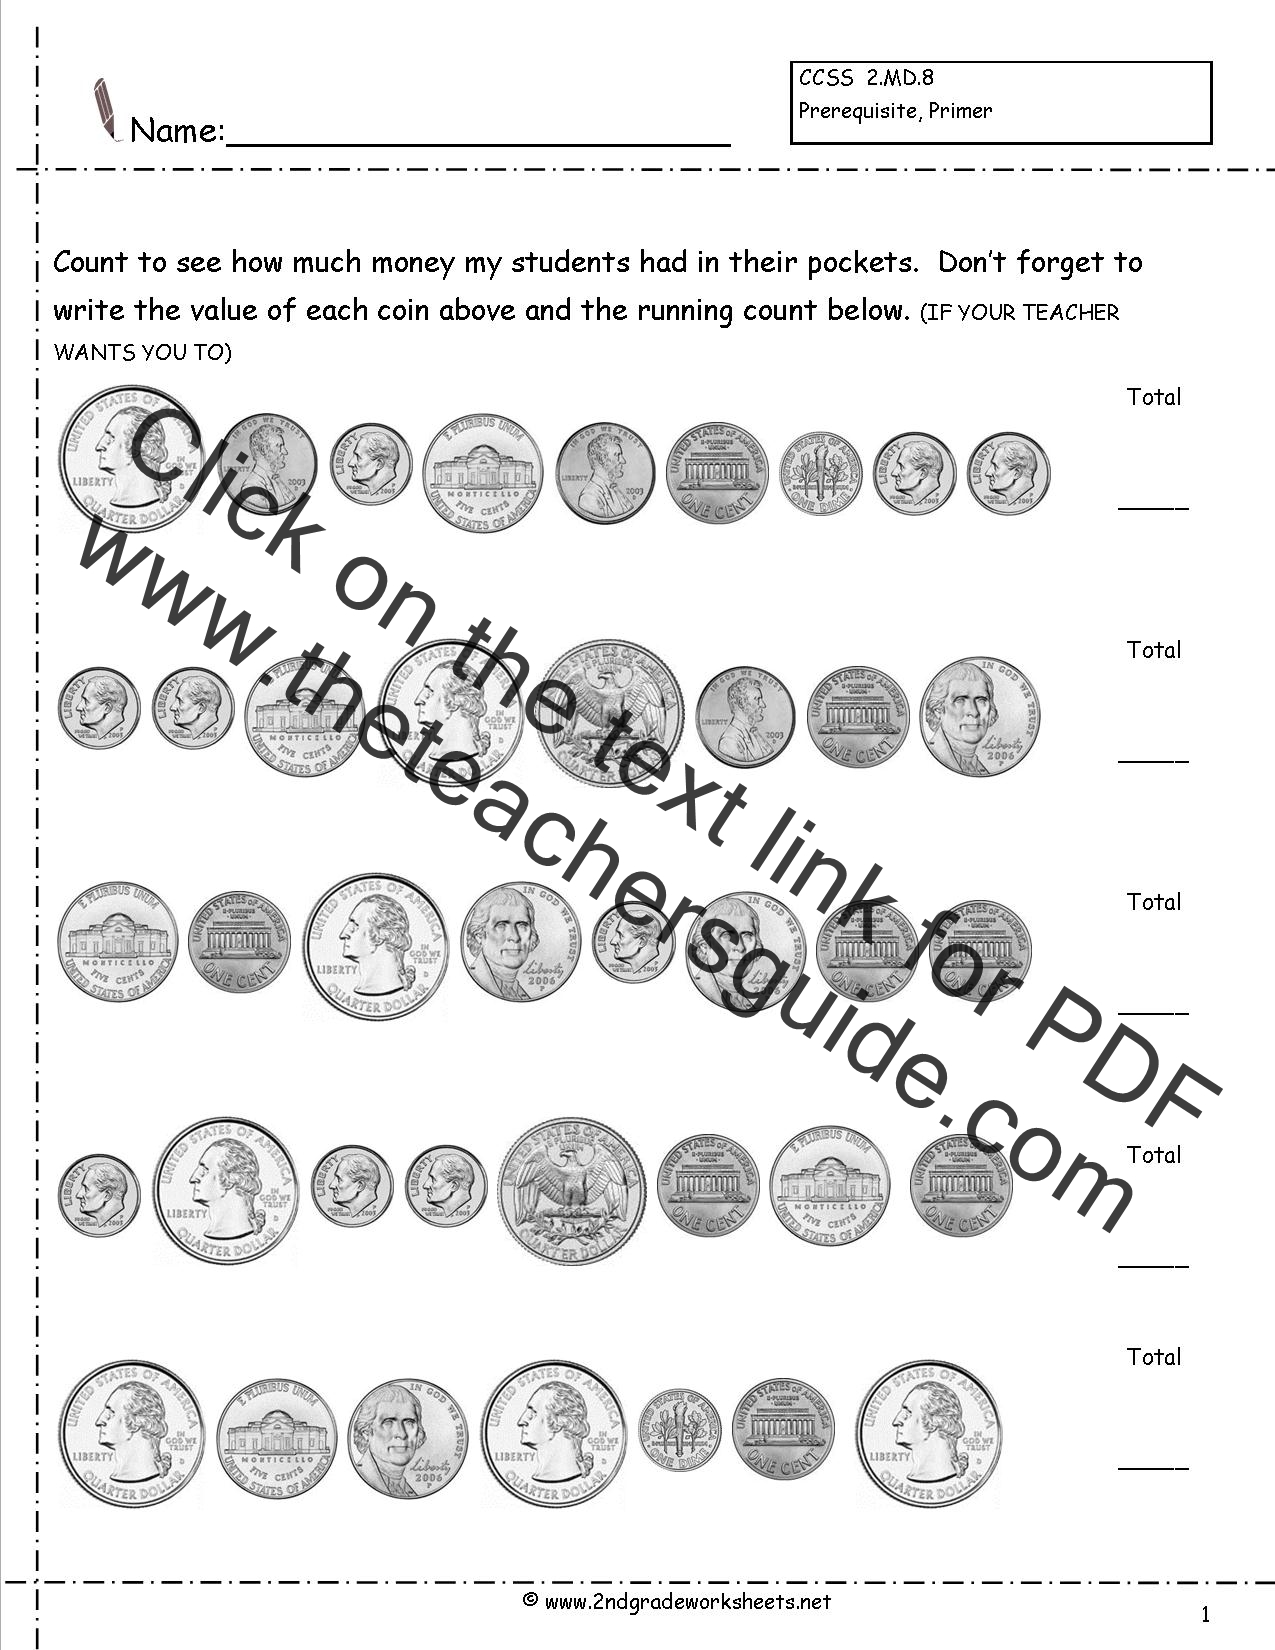 Worksheets Counting Coins Worksheets 2nd Grade counting coins and money worksheets printouts worksheets